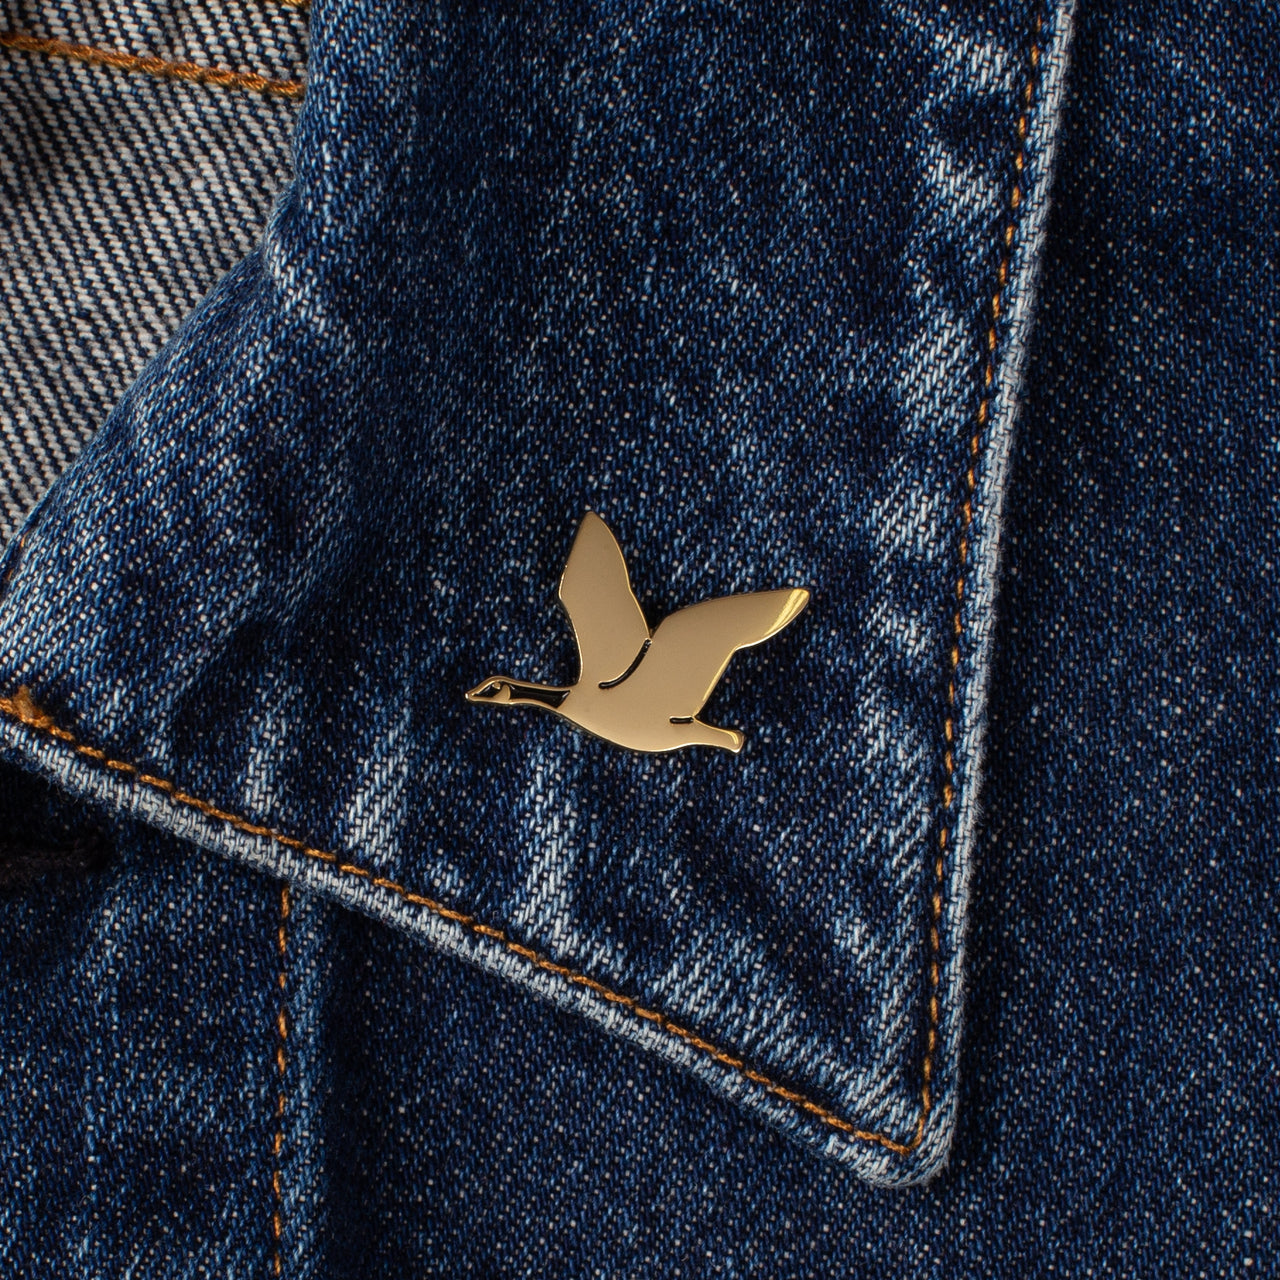 Enamel Pin - Flying Goose